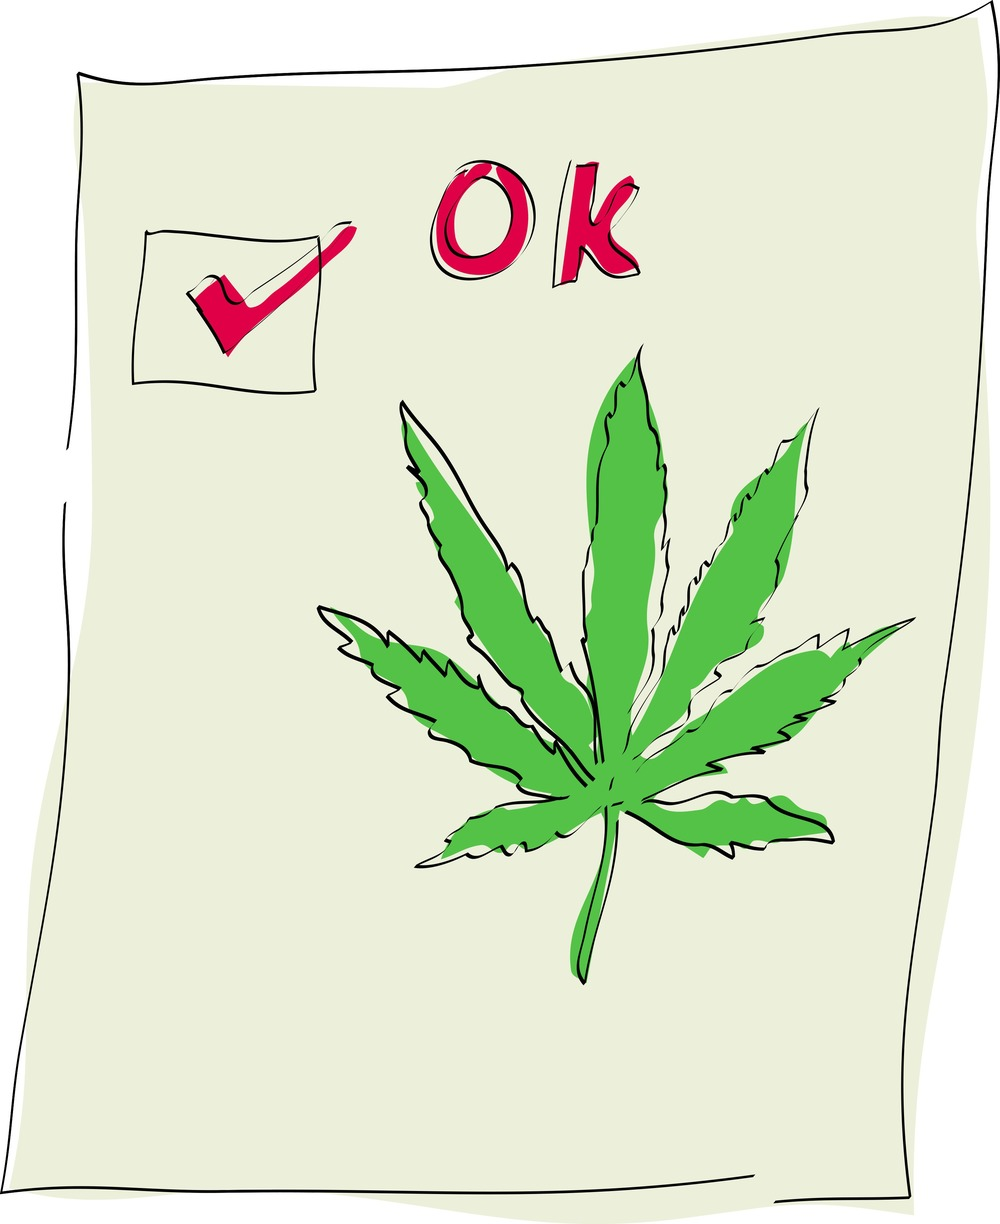 cannabis-leaf-with-tick-mark_GkU0Hw8O_L.jpg